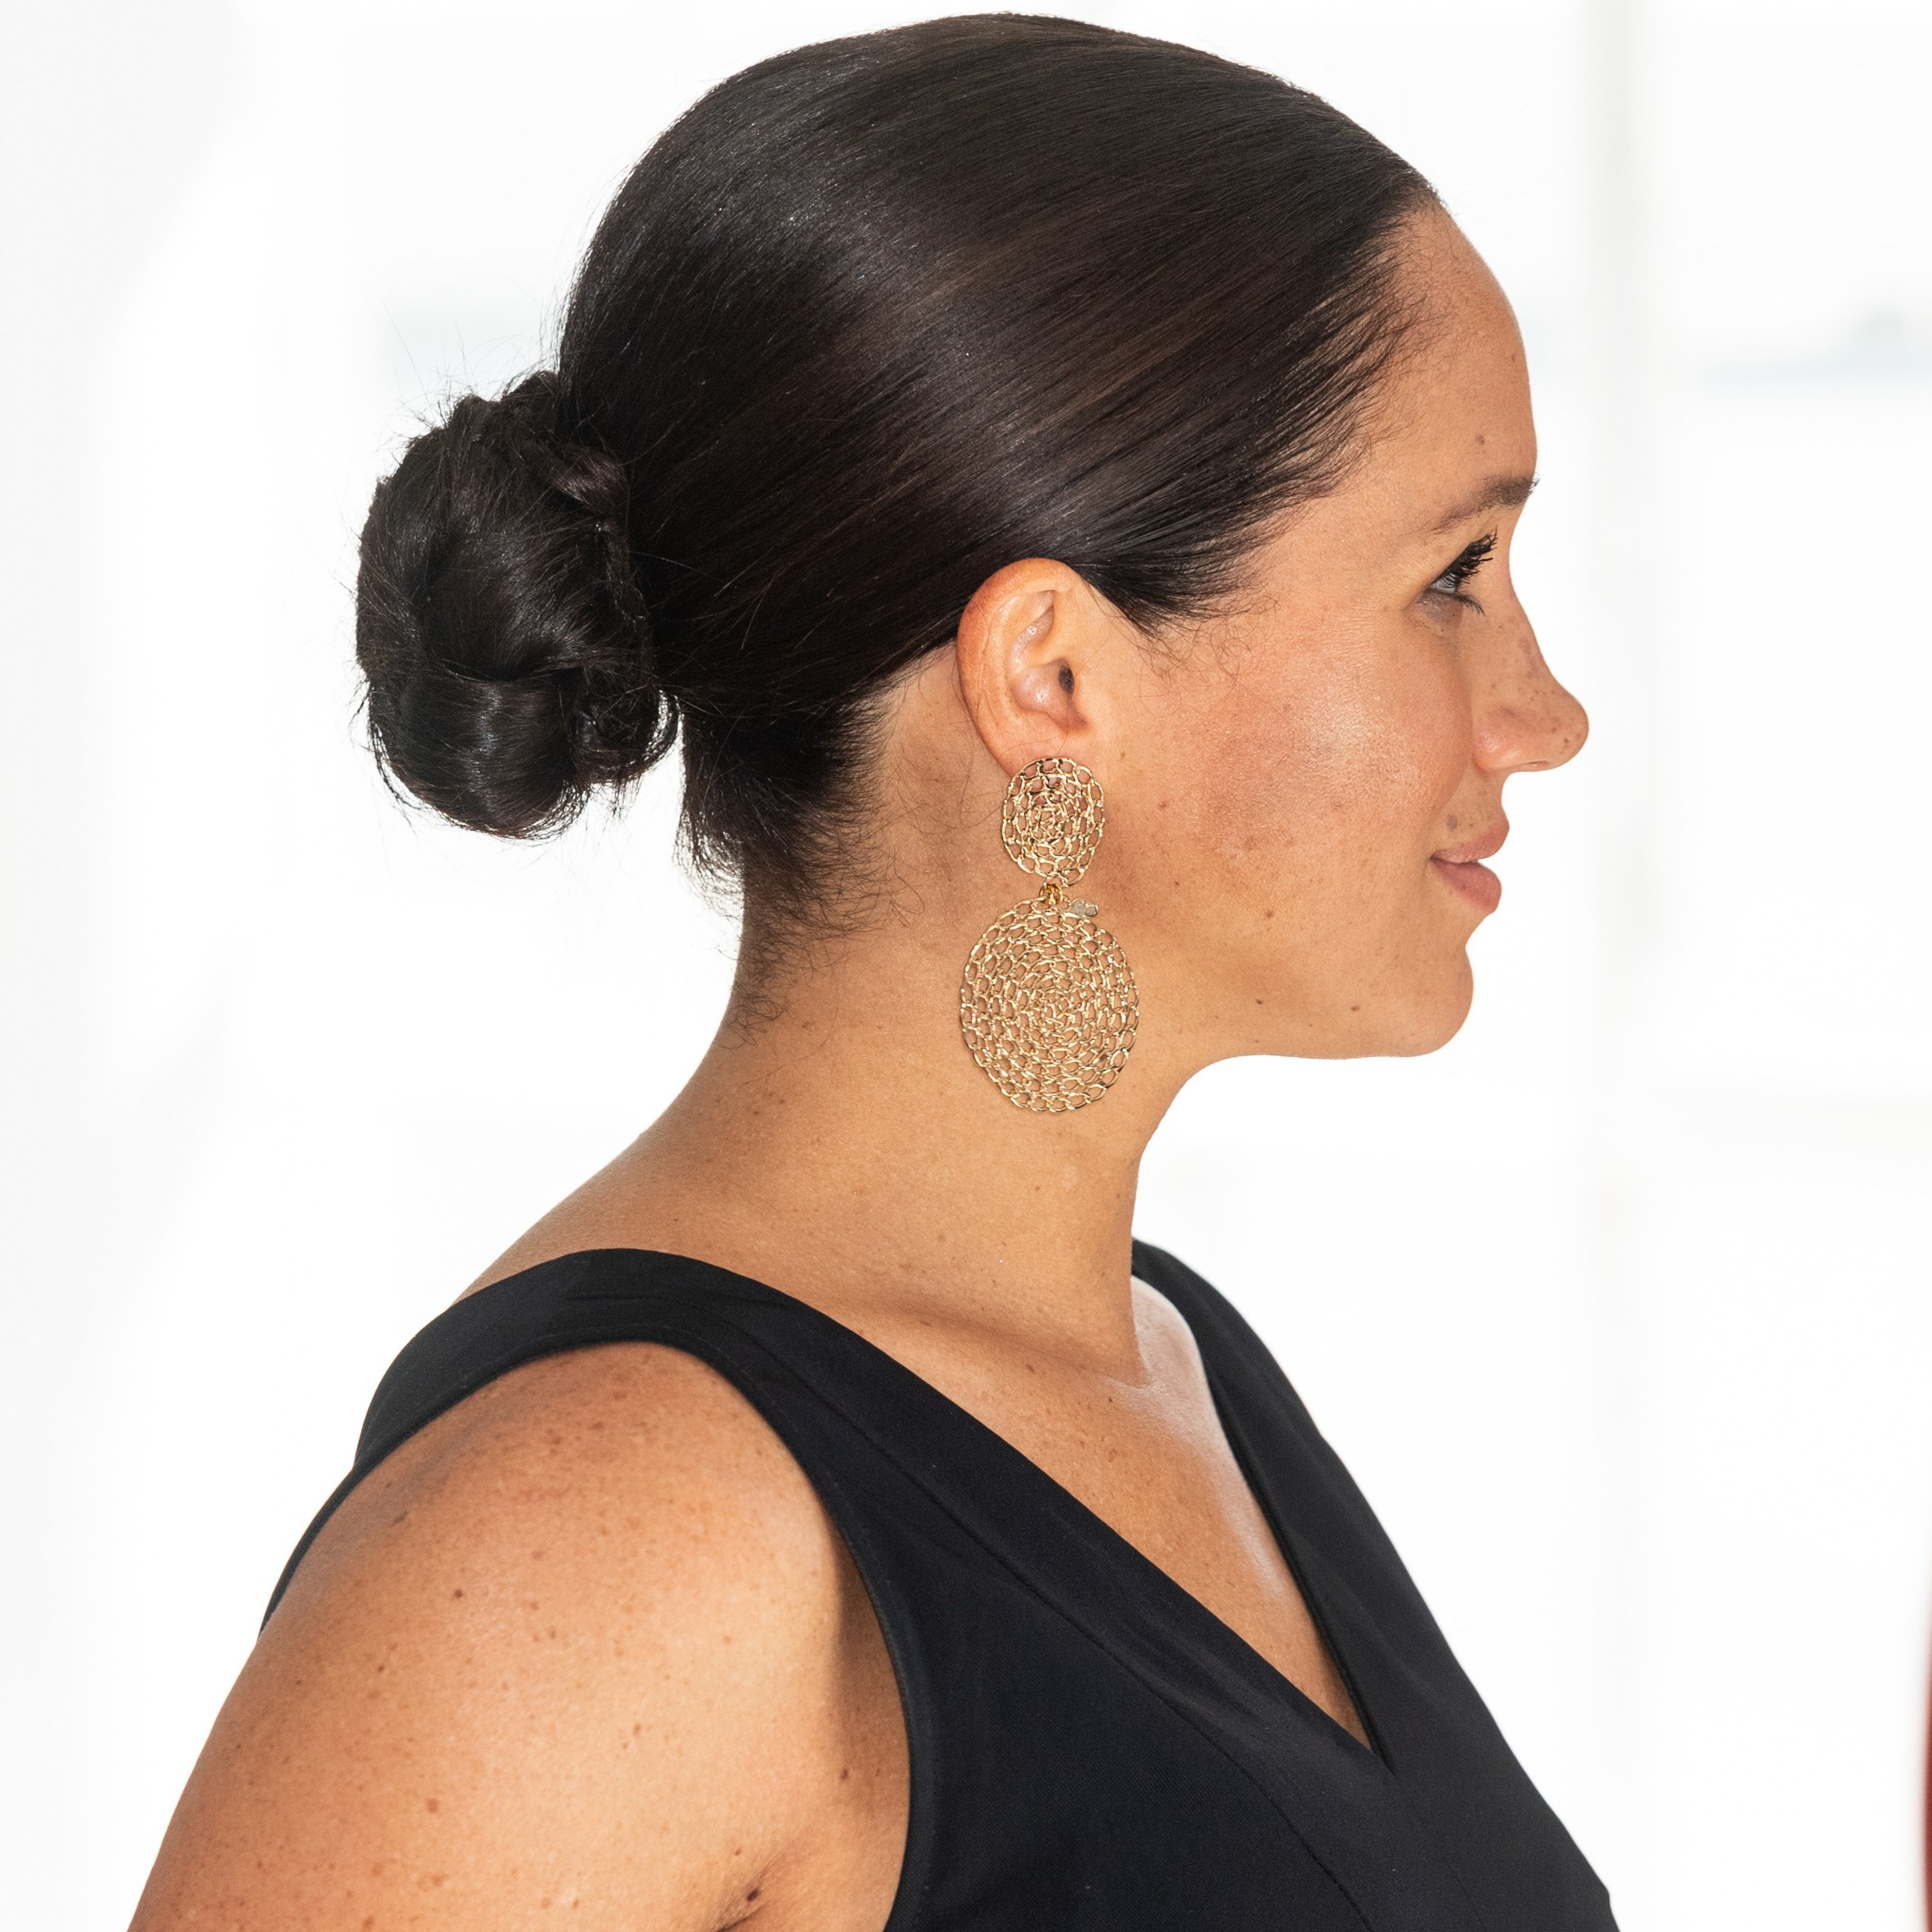 The Evolution Of Meghan Markle's Hair Over The Years (View 19 of 20)